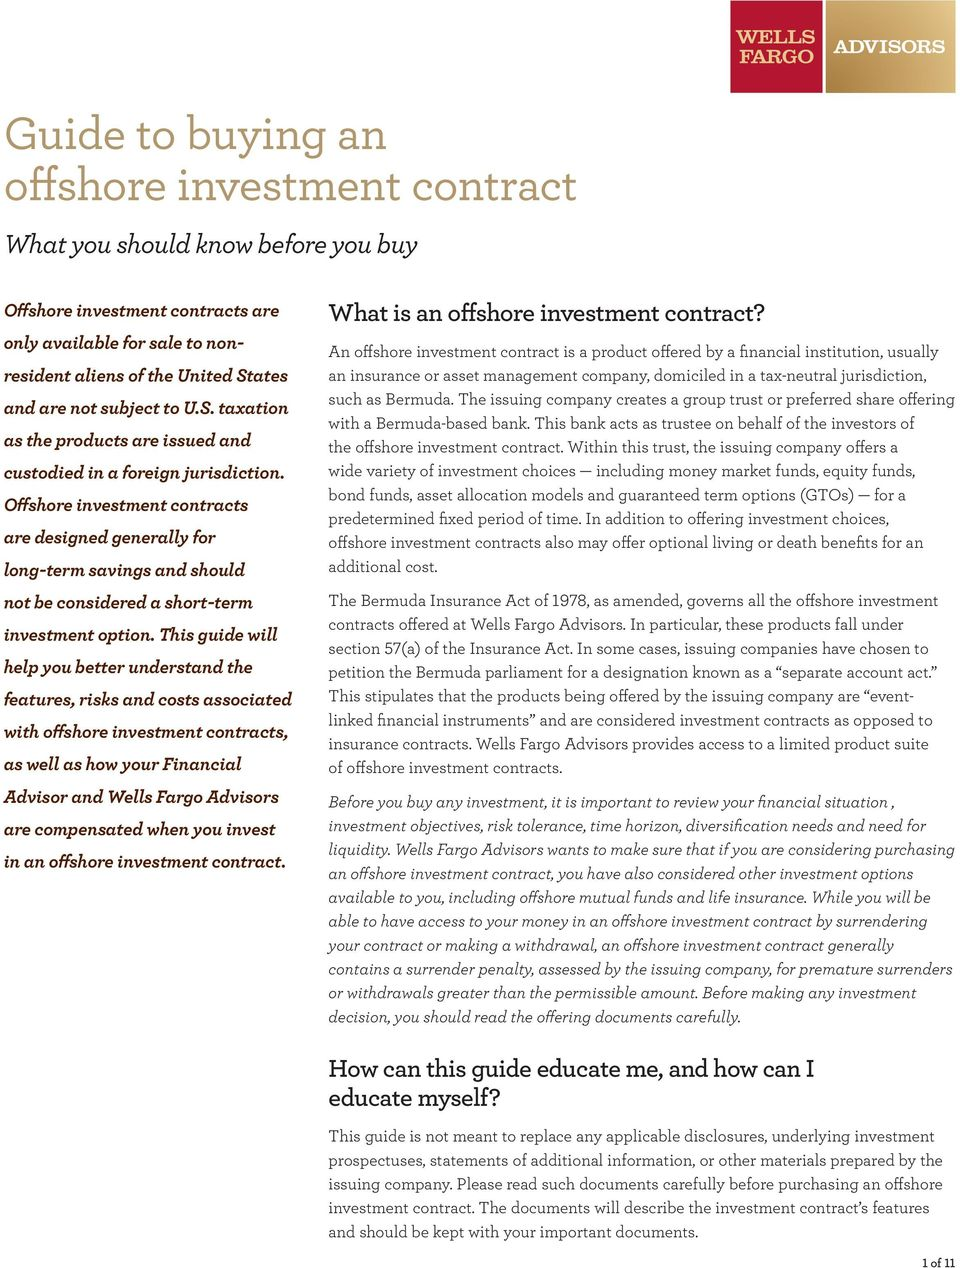 Offshore investment contracts are designed generally for long-term savings and should not be considered a short-term investment option.